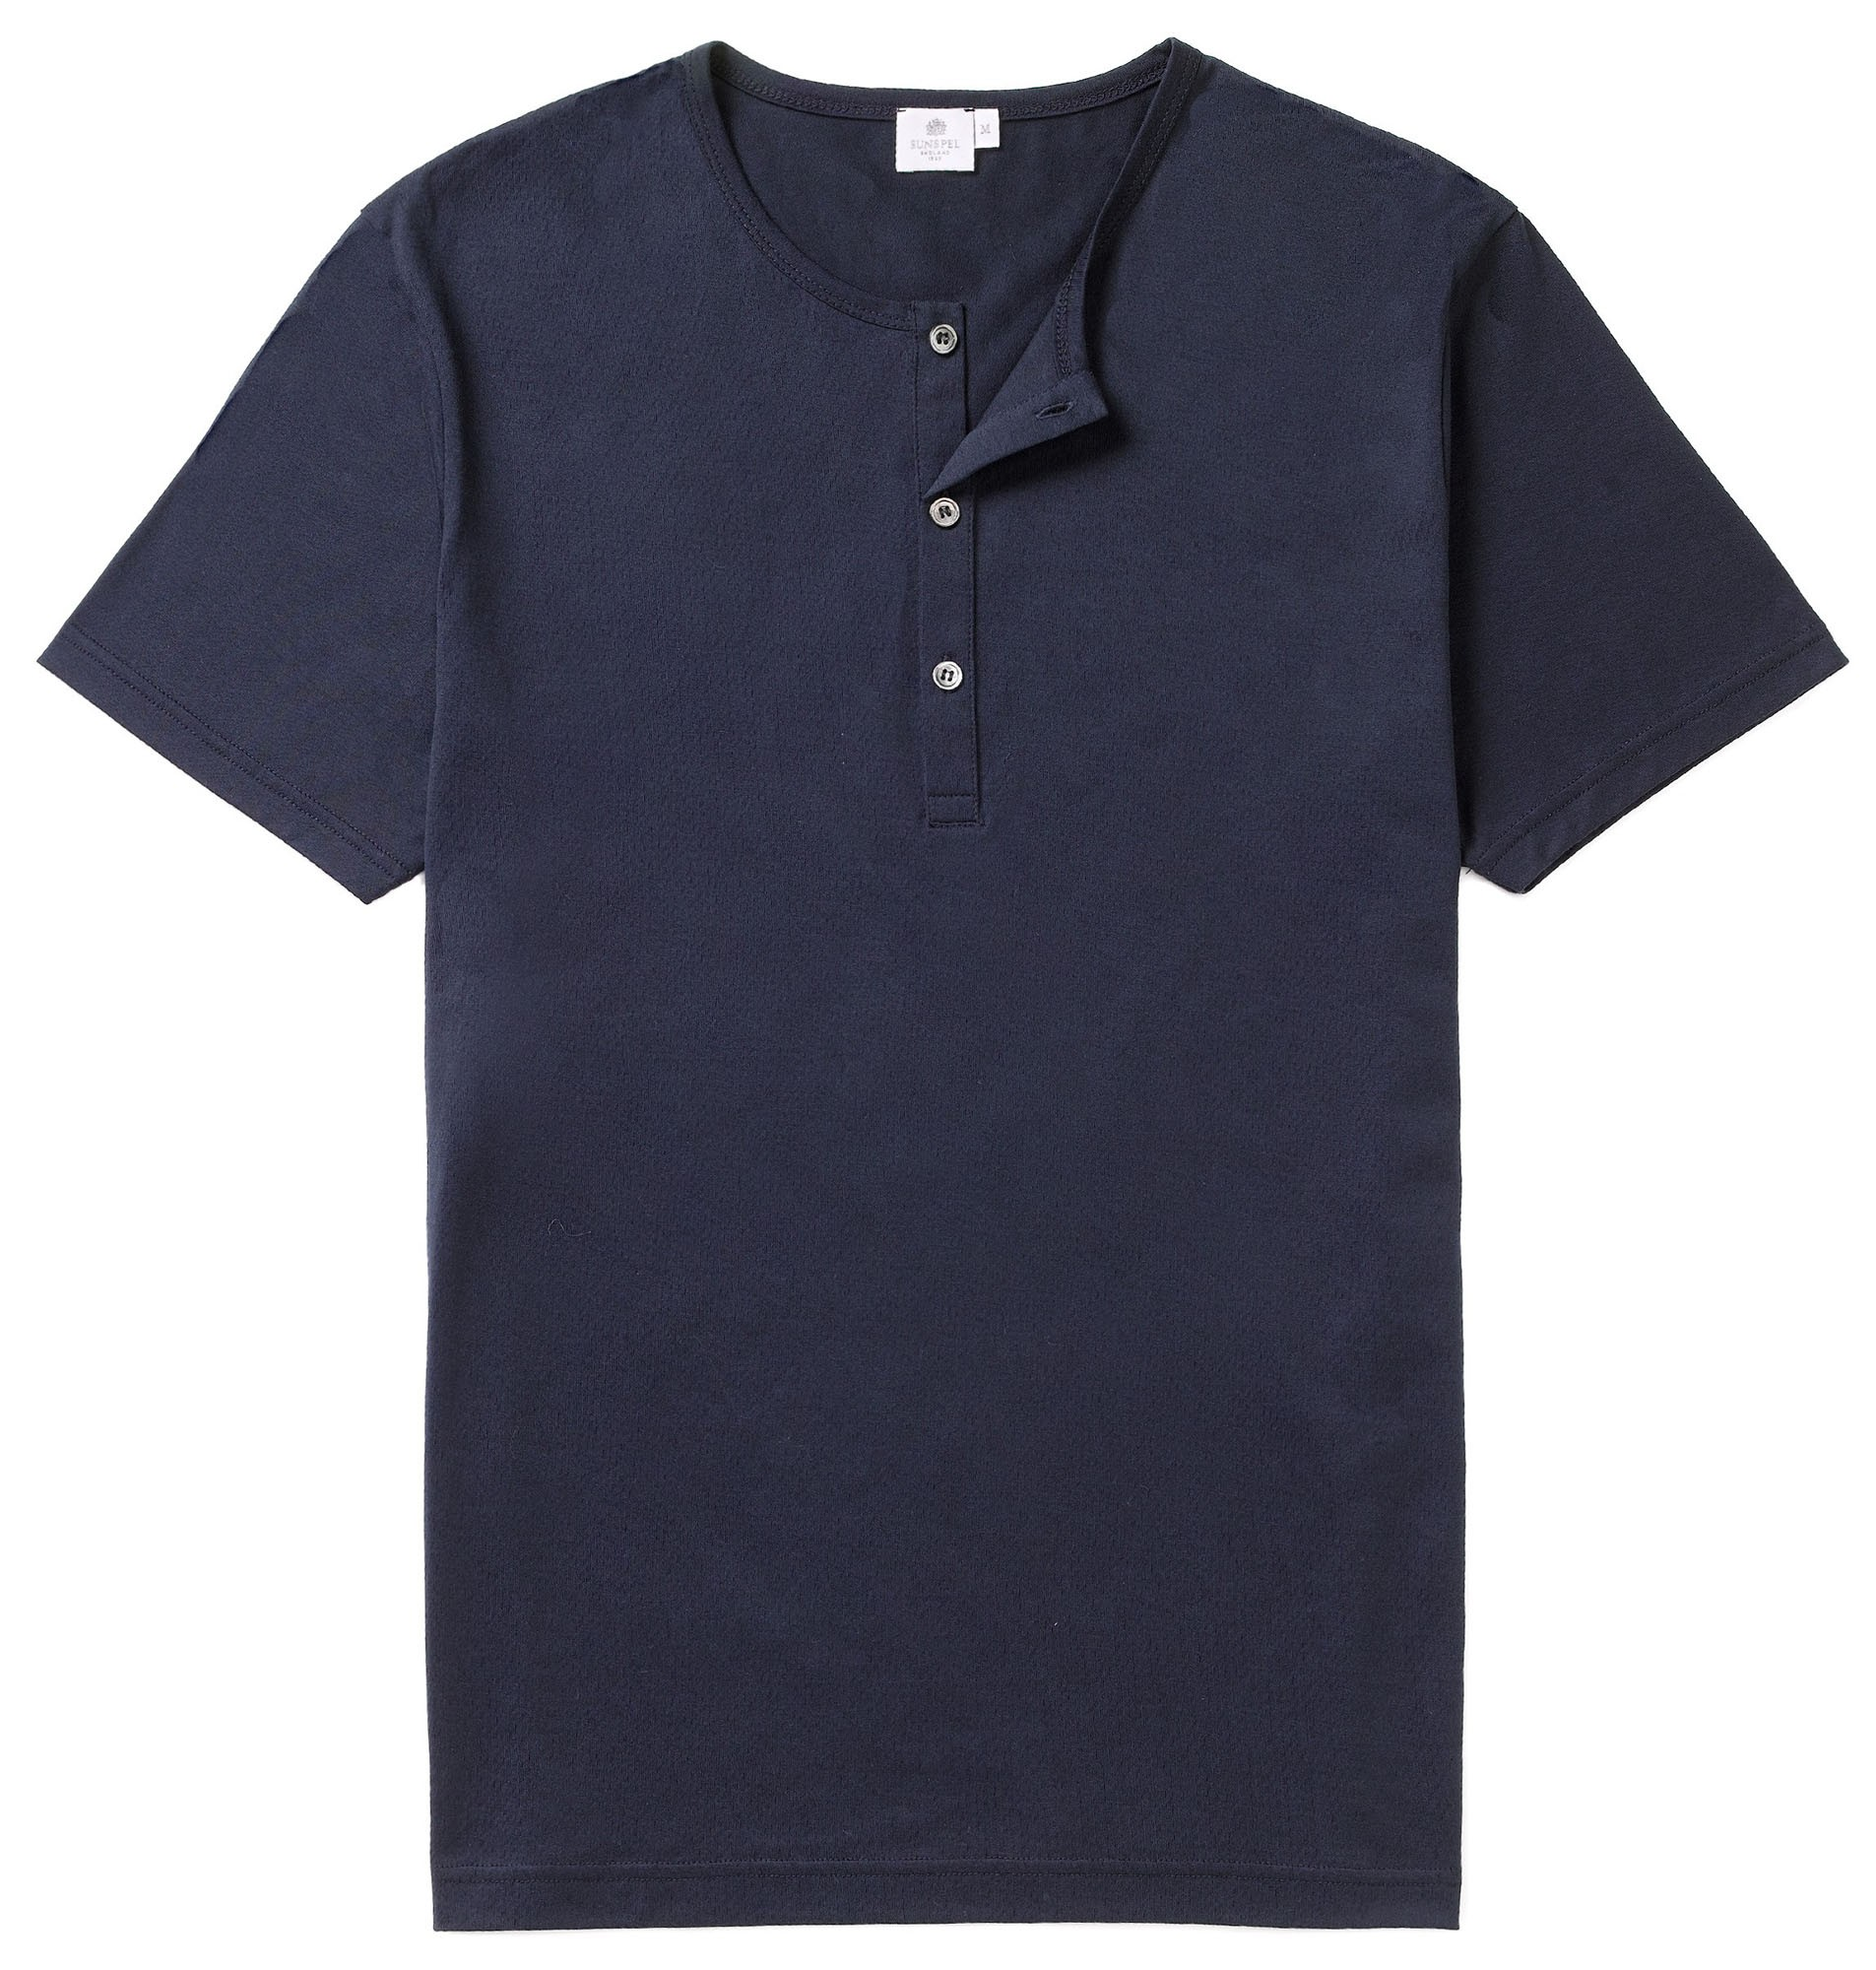 Sunspel Navy Men's Cotton Henley T-Shirt